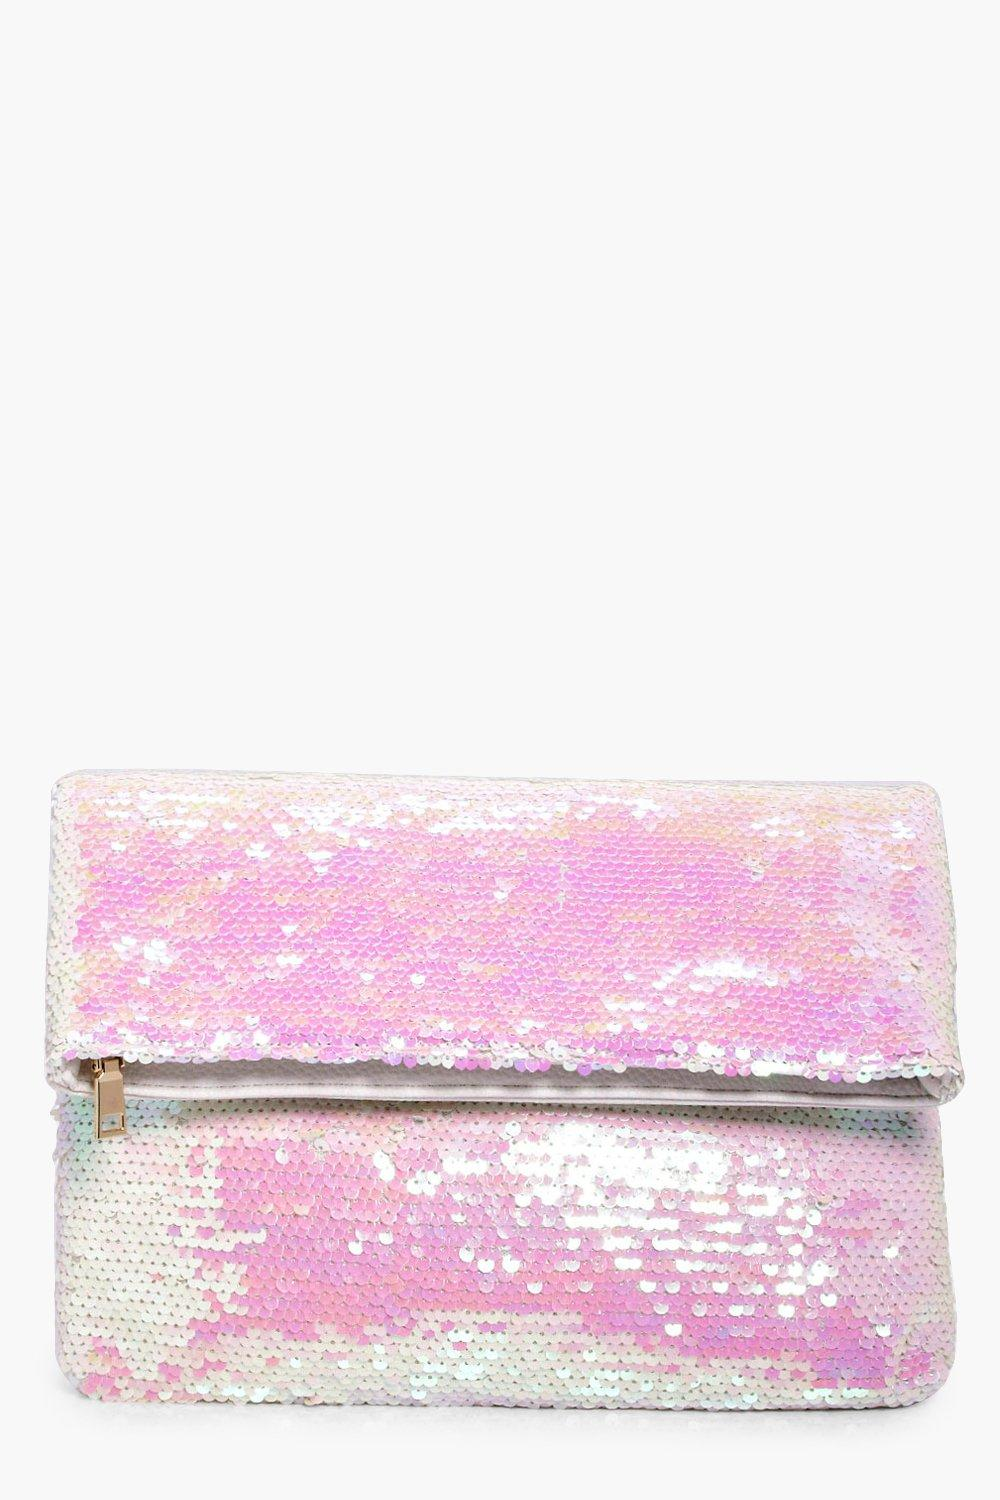 Mermaid Sequin Fold Over Clutch - white - Annabel